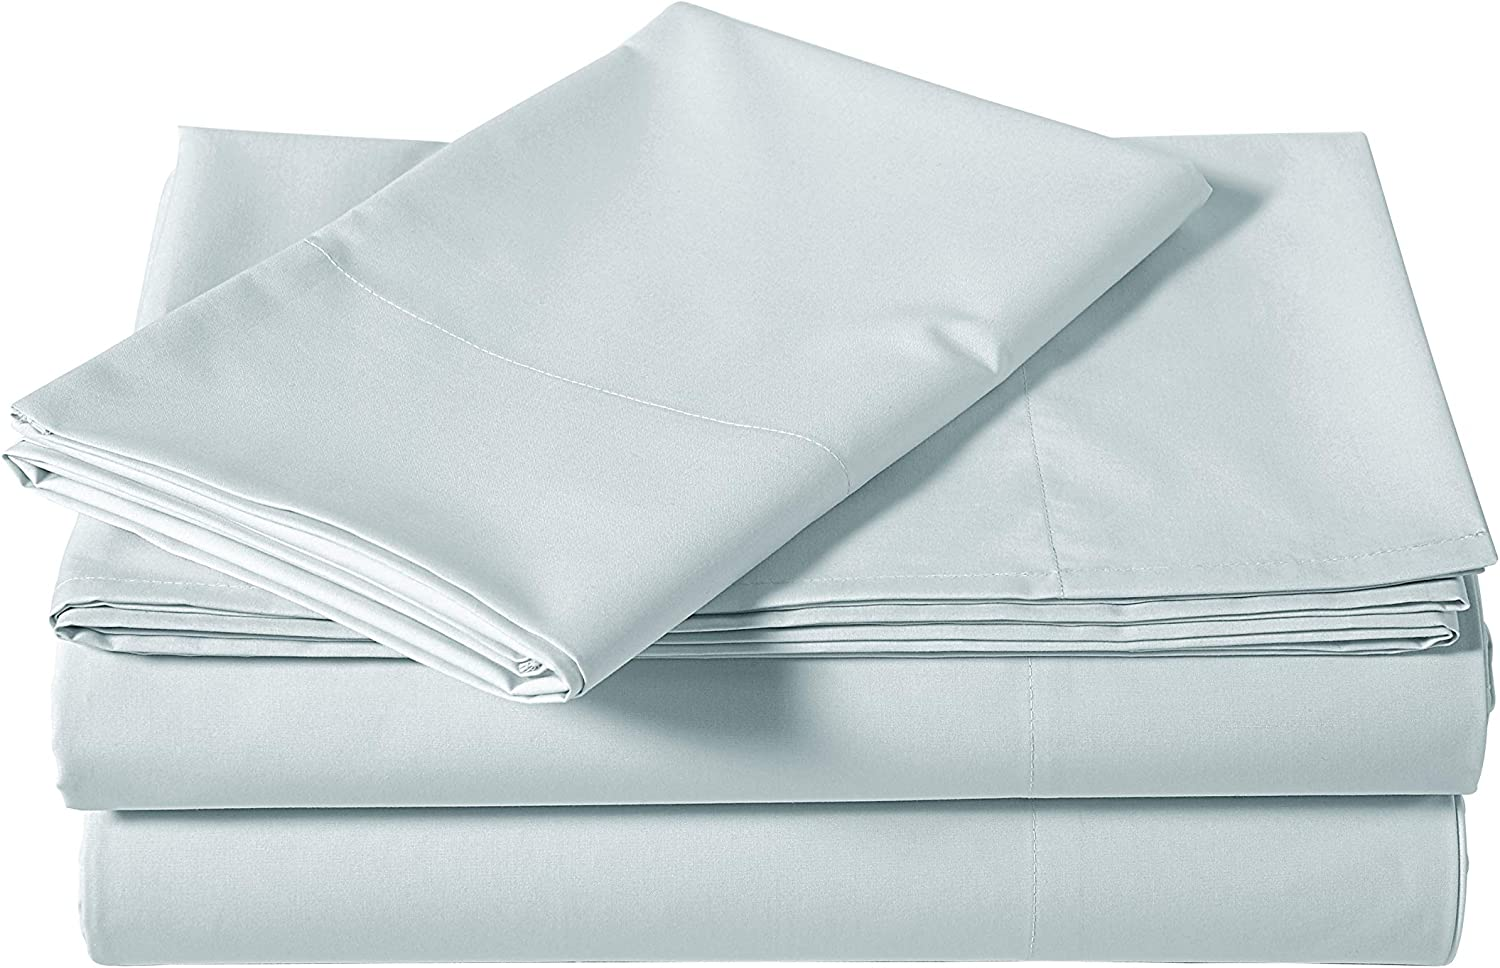 AmazonBasics Super-Soft Sateen 400 Thread Count Cotton Sheet Set - Twin XL, Cloud Blue